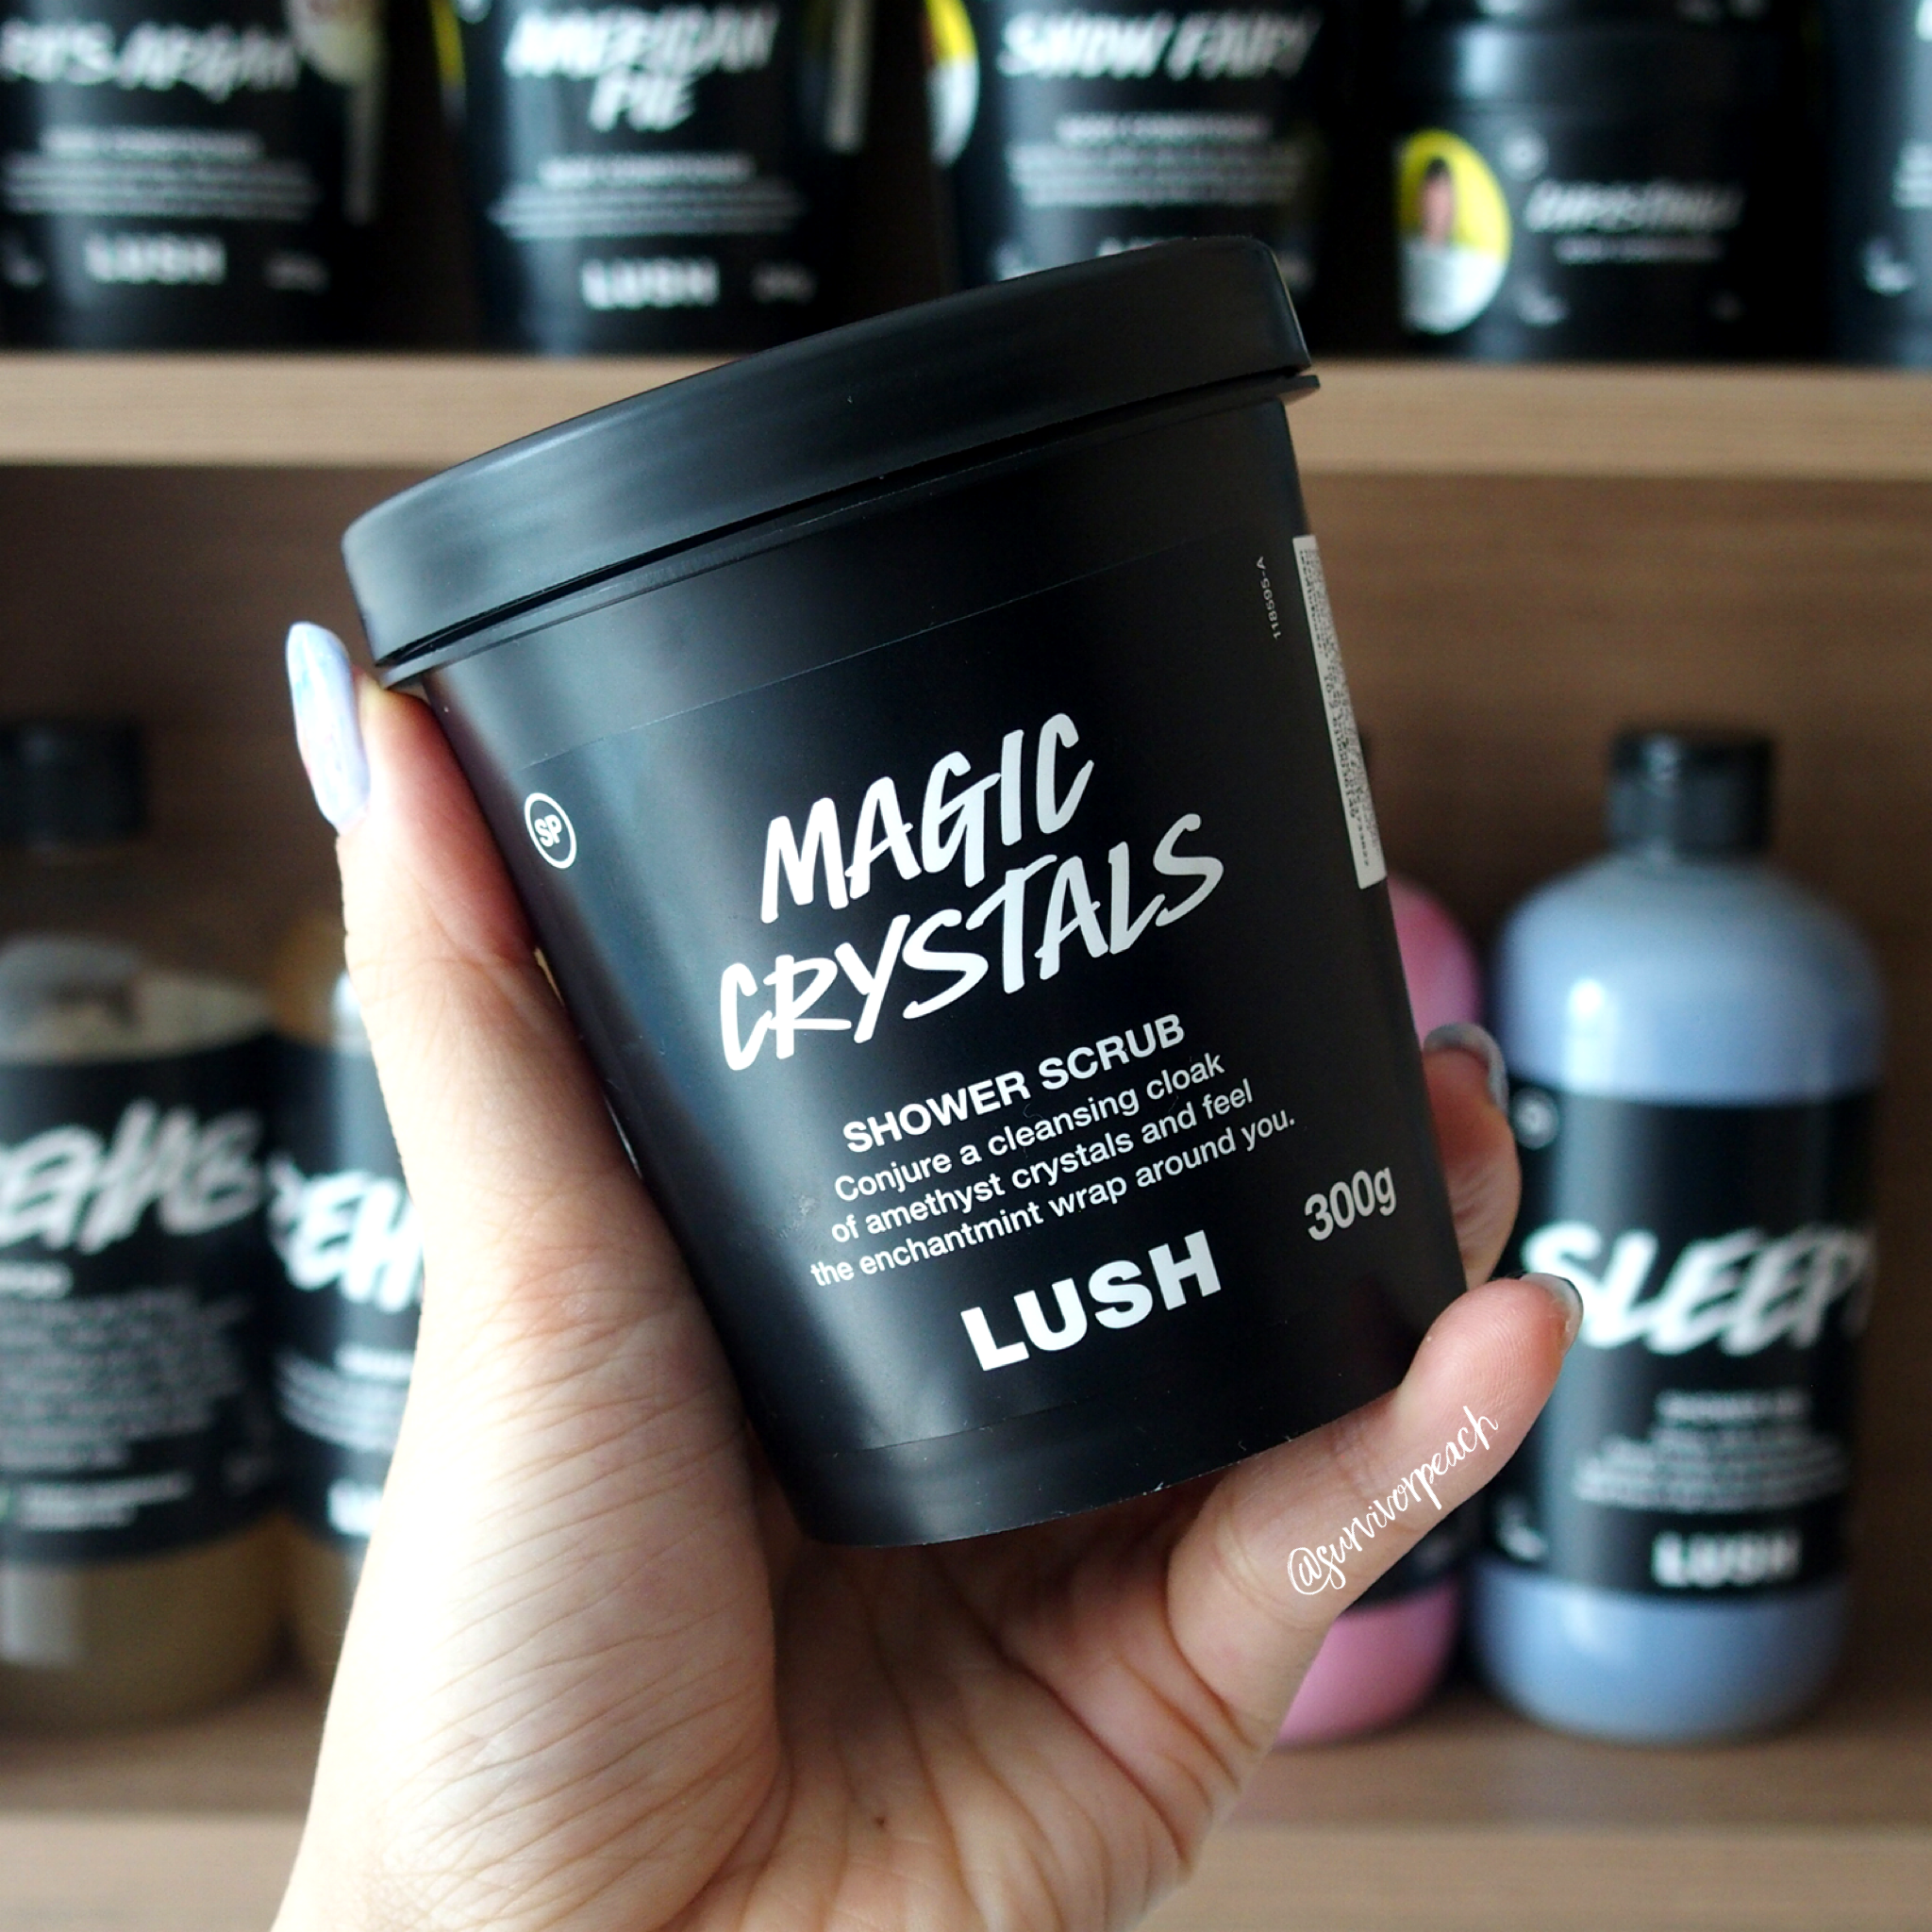 Lush Magic Crystals Shower Scrub